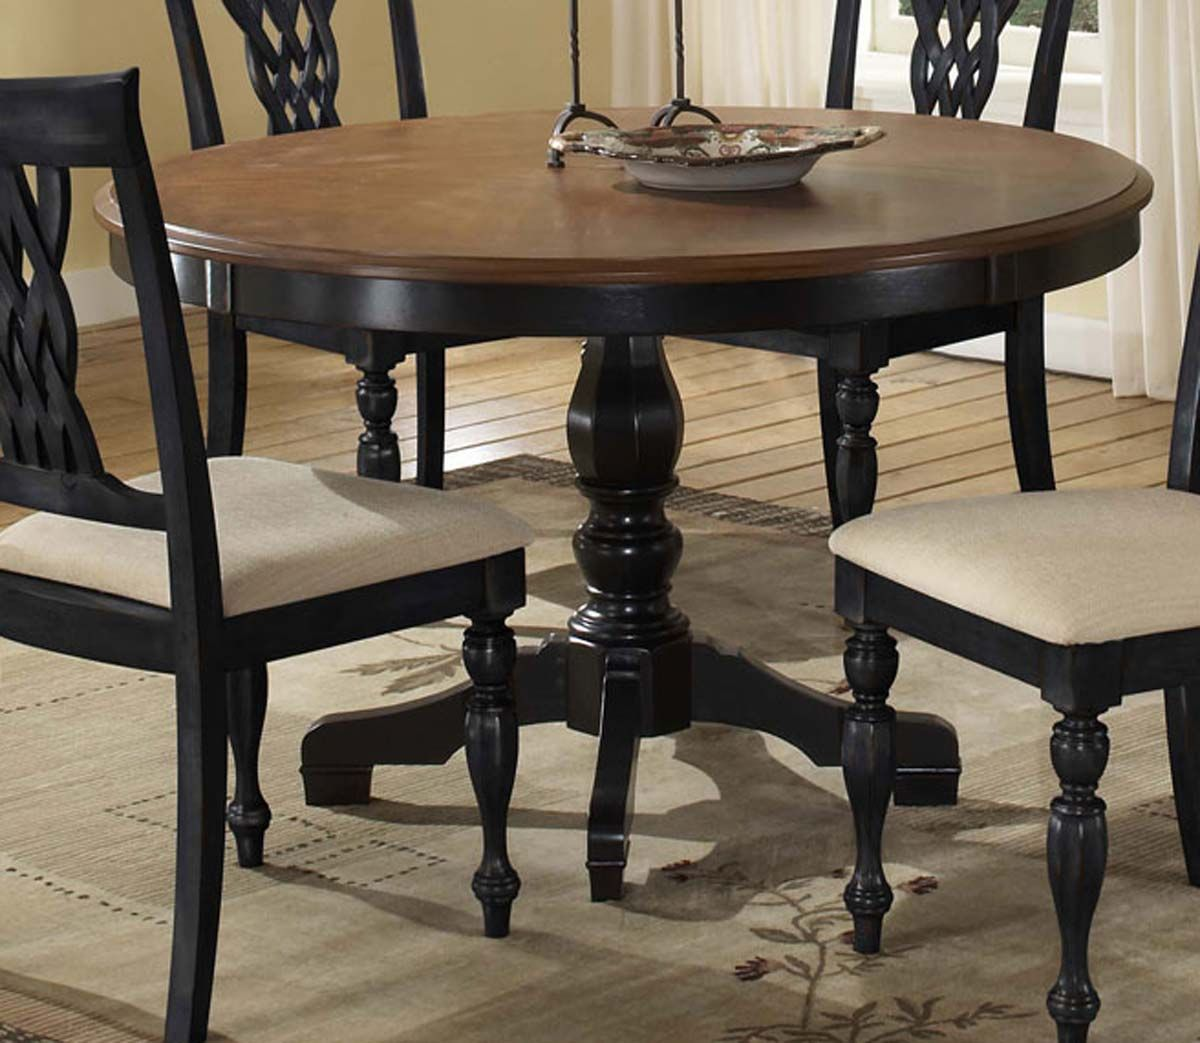 Hillsdale Embassy 5 Piece Dining Set Rubbed Black Cherry